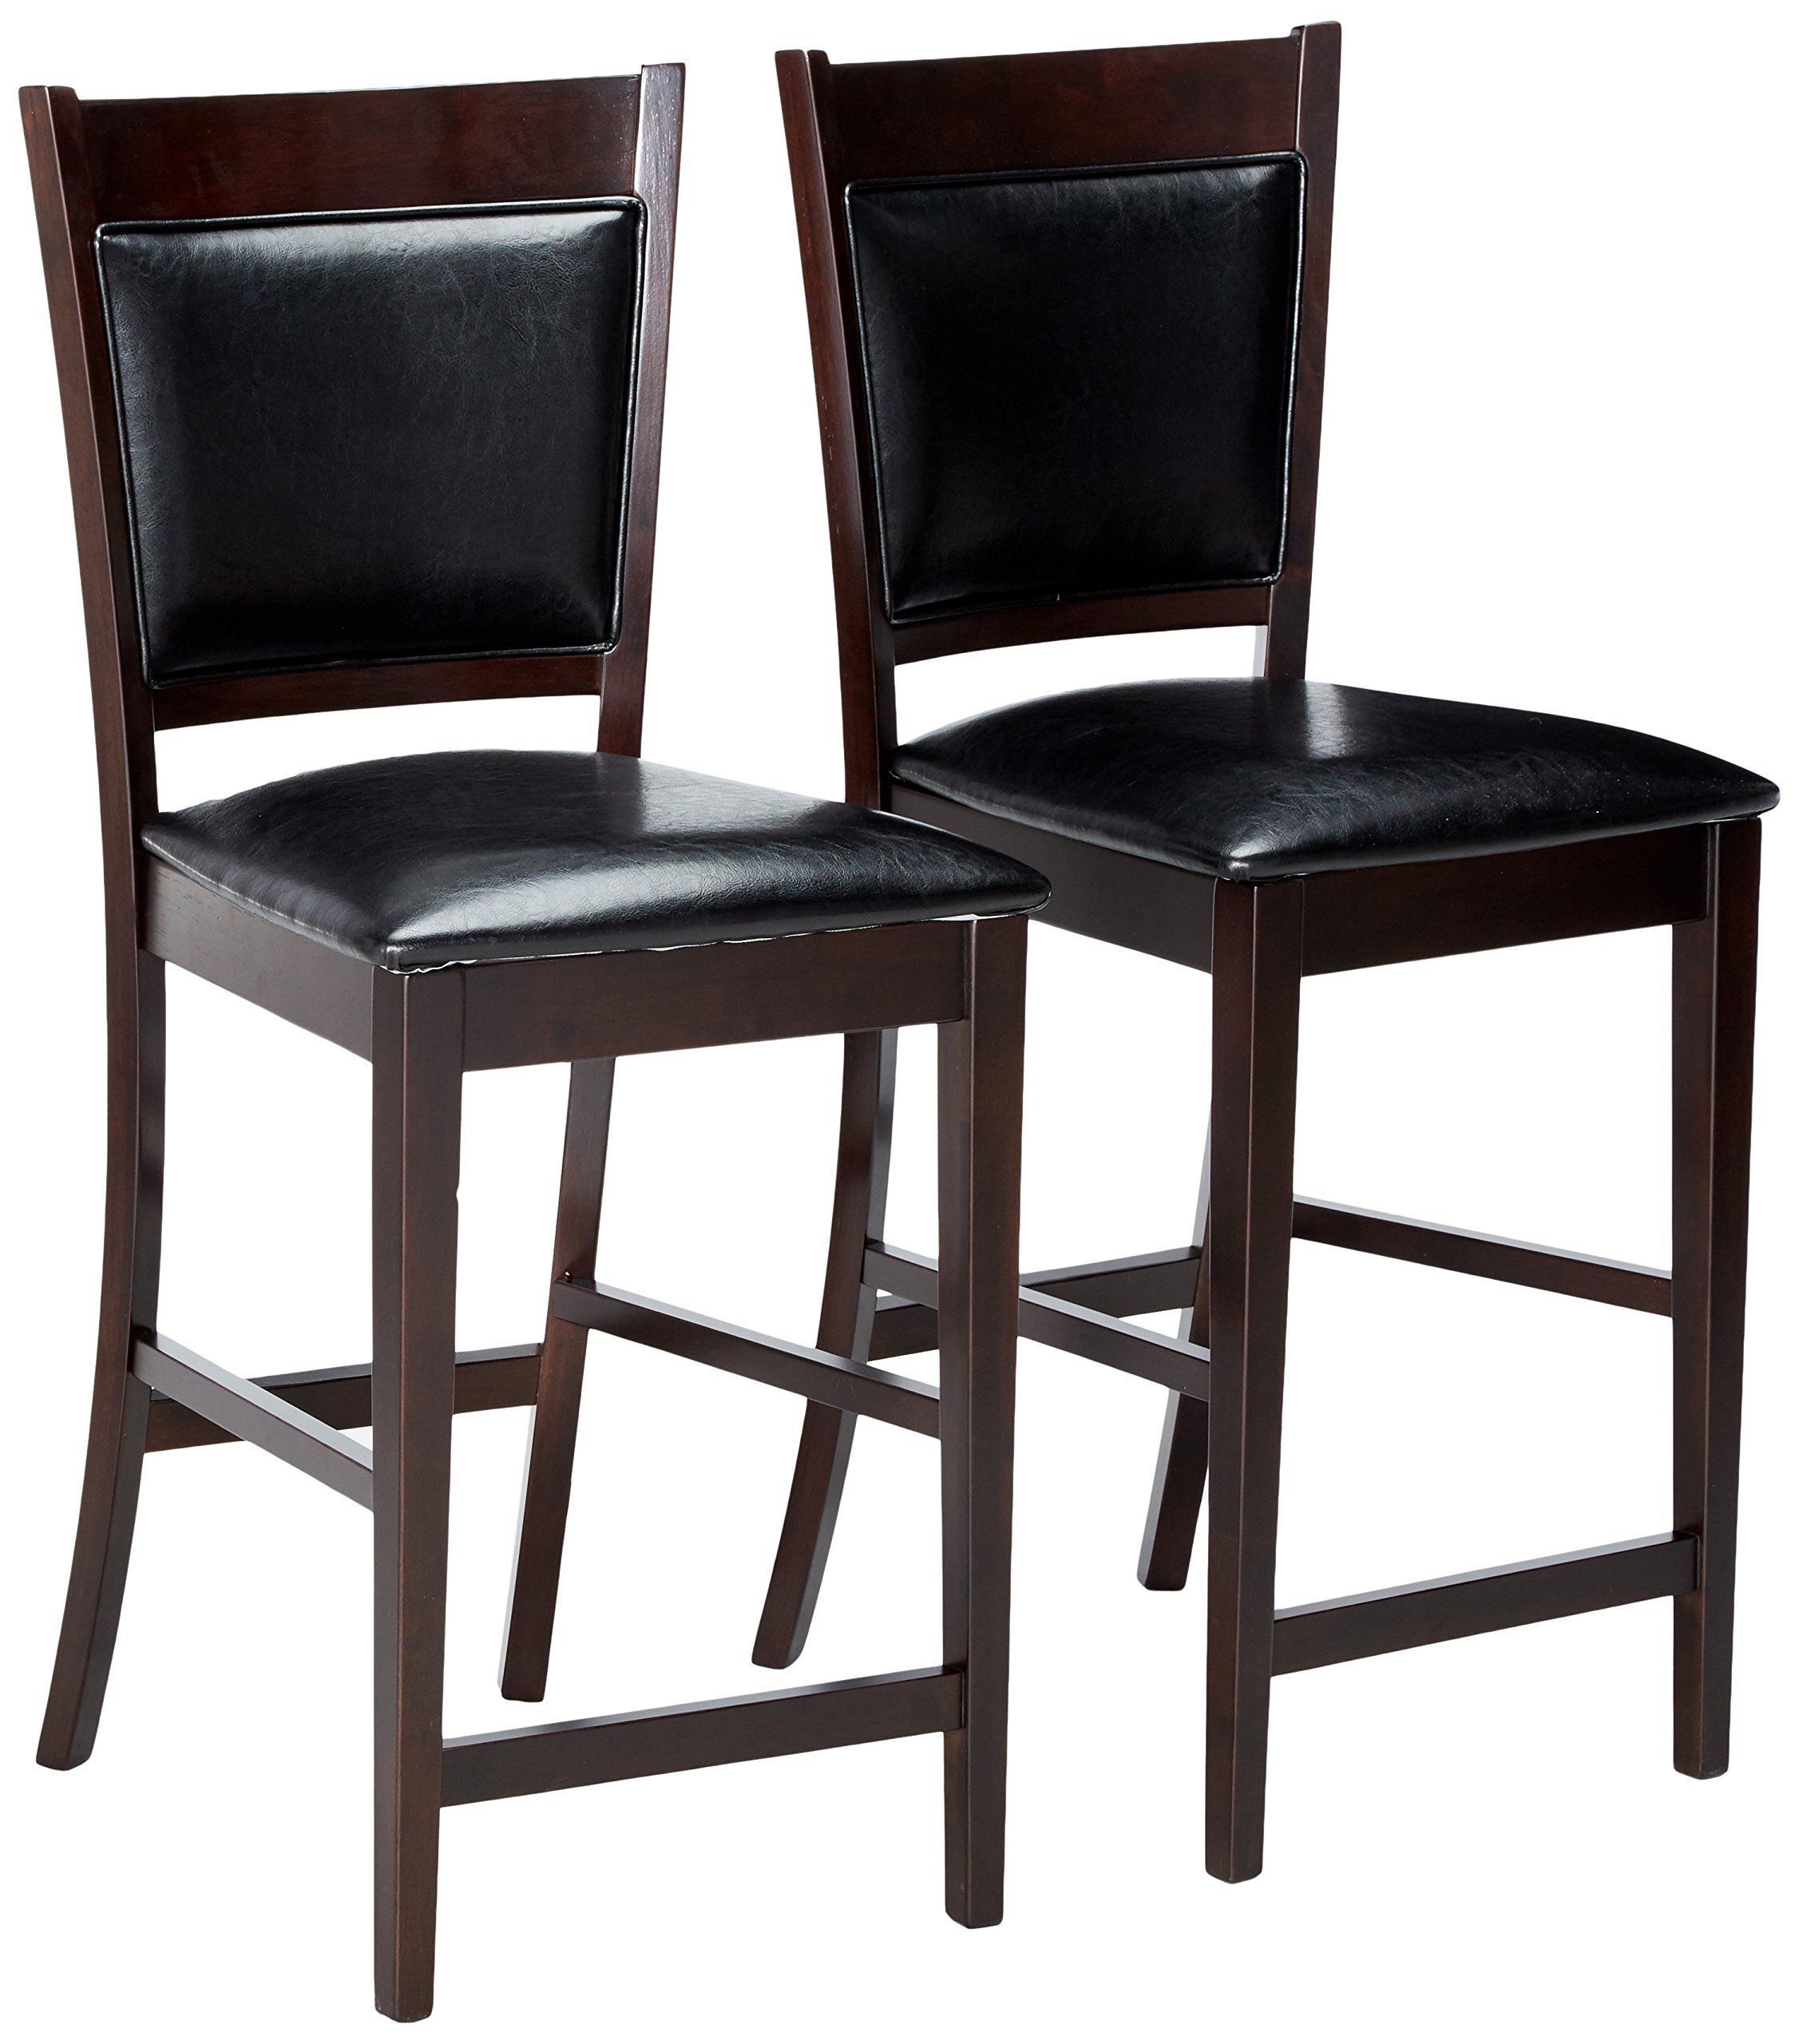 Jaden Casual Espresso Counter-Height Chair by Coaster Home Furnishings